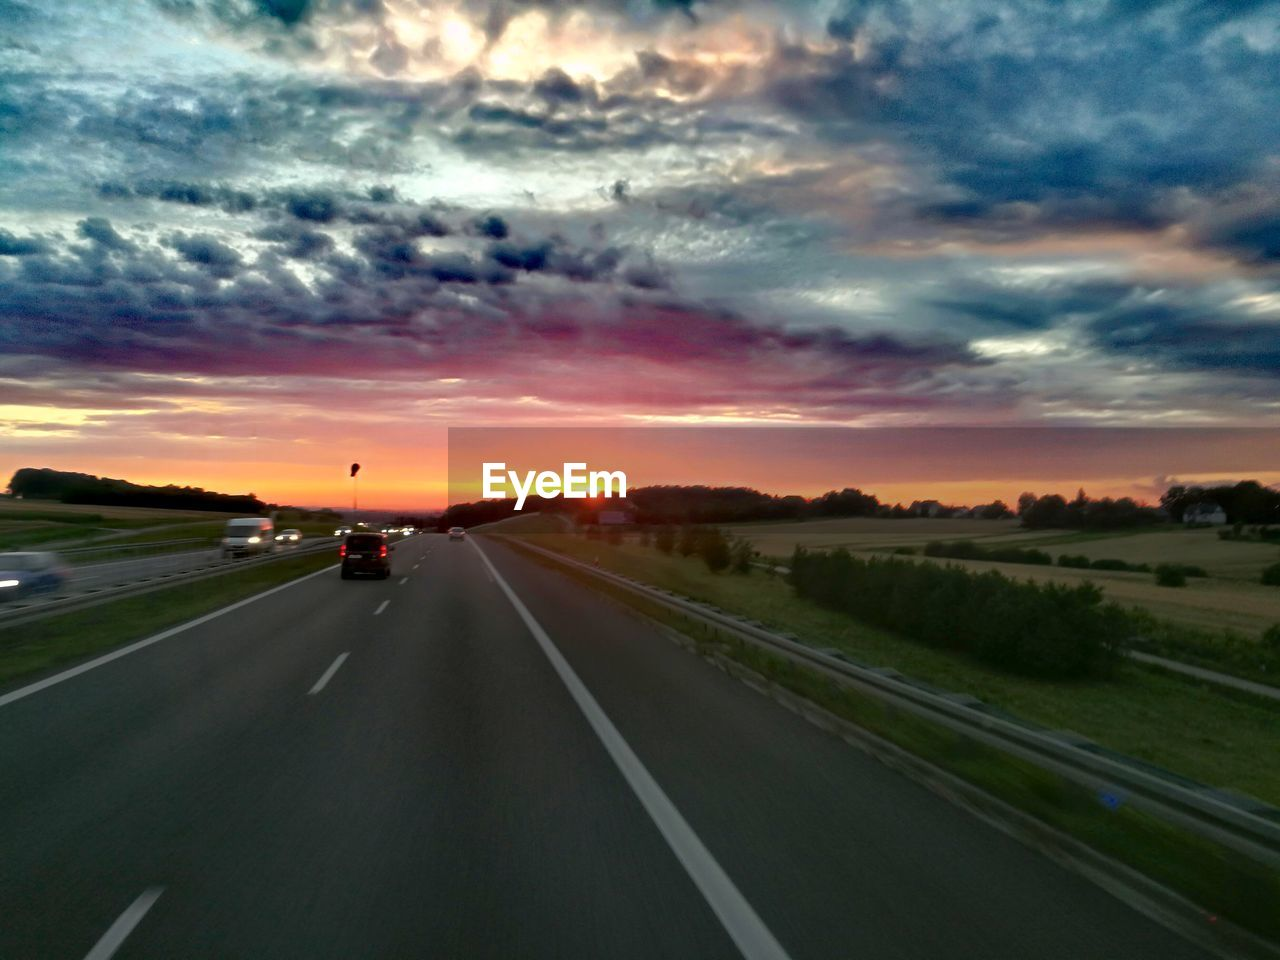 sunset, road, cloud - sky, transportation, sky, the way forward, road marking, dramatic sky, car, travel, land vehicle, sun, mode of transport, scenics, nature, no people, dividing line, outdoors, car point of view, landscape, beauty in nature, storm cloud, day